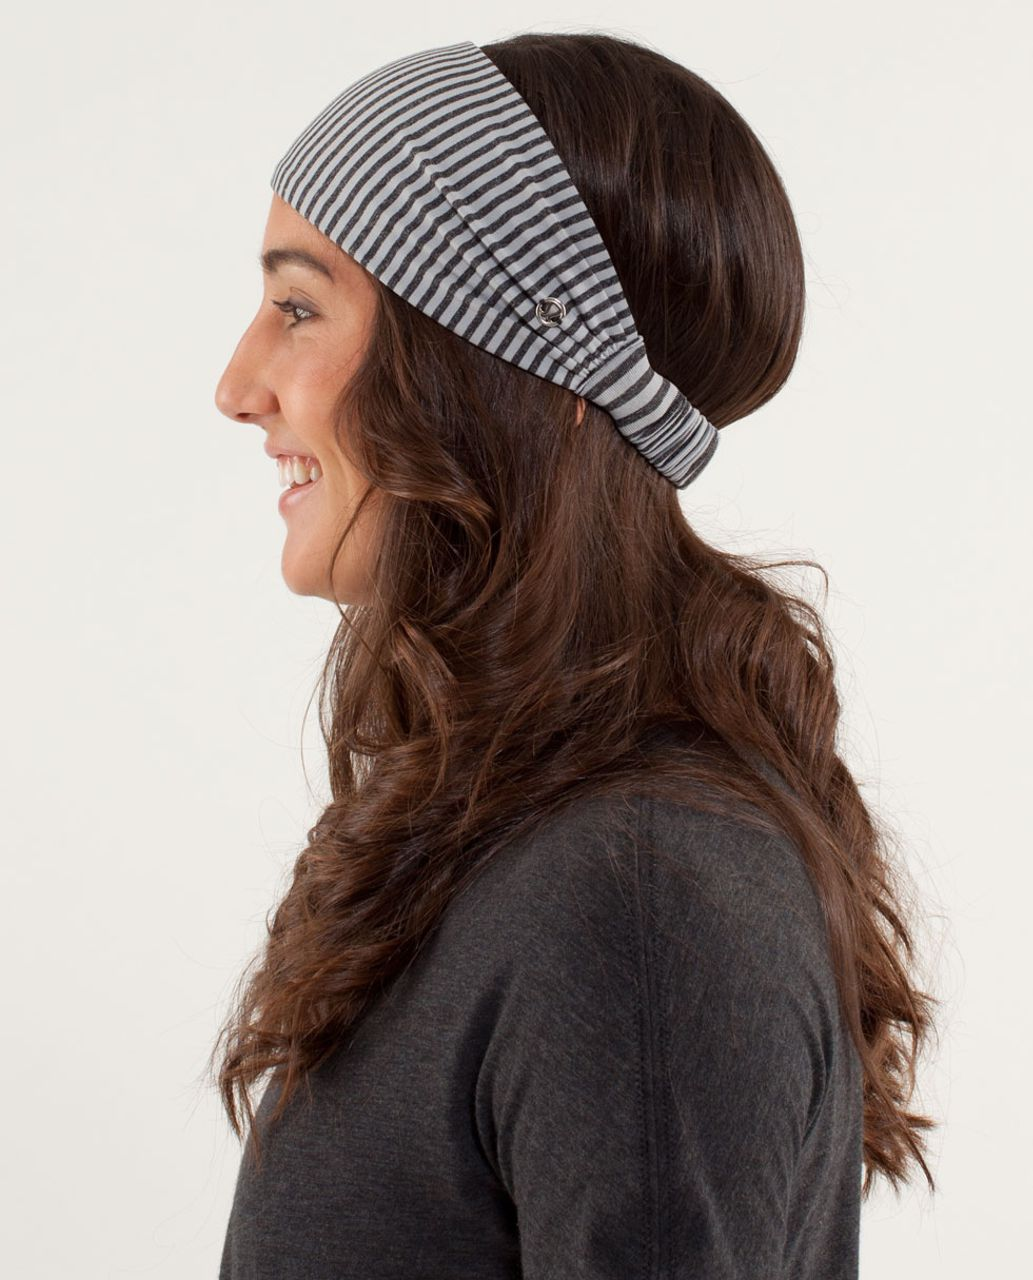 35c0492ac2 Lululemon Bang Buster Headband - Slope Stripe Silver Slate Heathered Black  - lulu fanatics